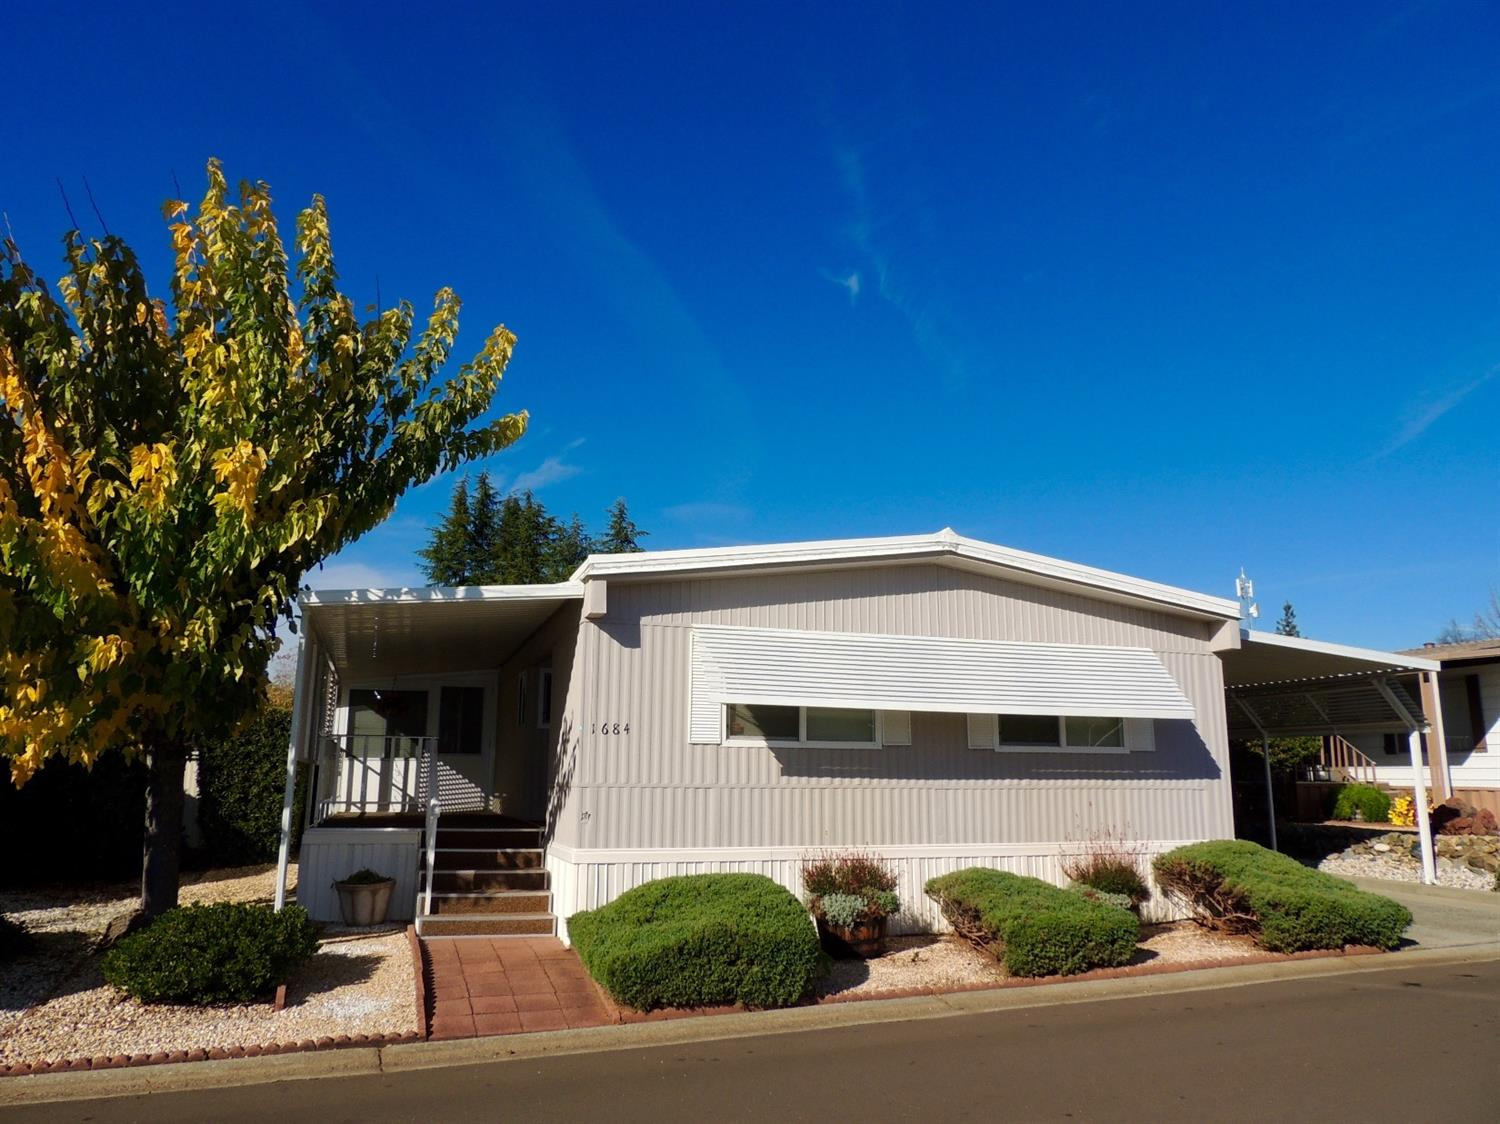 Move in Ready! Light and bright, well maintained 2 bedroom 2 bath home.  Brand New roof 9/2017. Dual pane windows, Central heat and air. Enclosed sunroom, easy maintenance yard. Tandem parking and storage shed. Nice park with many amenities.  Close to shopping and services.